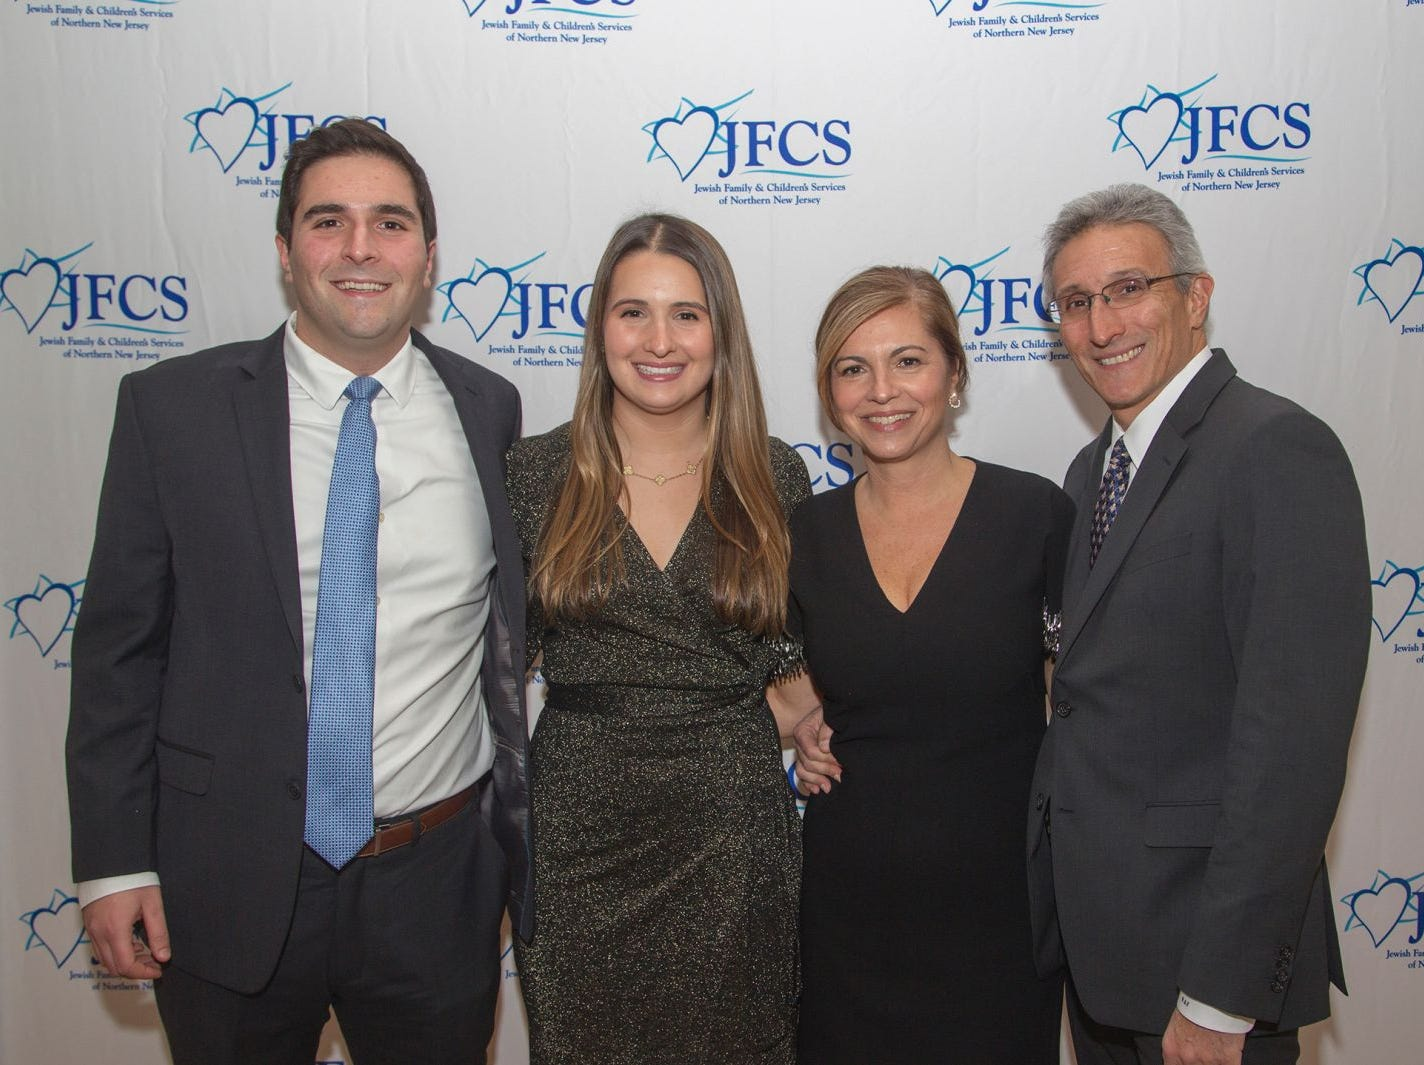 David Feverstein, Karen Feverstein, Shira Feverstein, Robert Feverstein. Jewish Family & Children's Services of Northern New Jersey held its annual gala at the Edgewood Country Club in River Vale. The evening honored Shira Feuerstein, Jayne Petak, and Alan Scharfstein for their leadership, support, and dedication. 11/18/2018